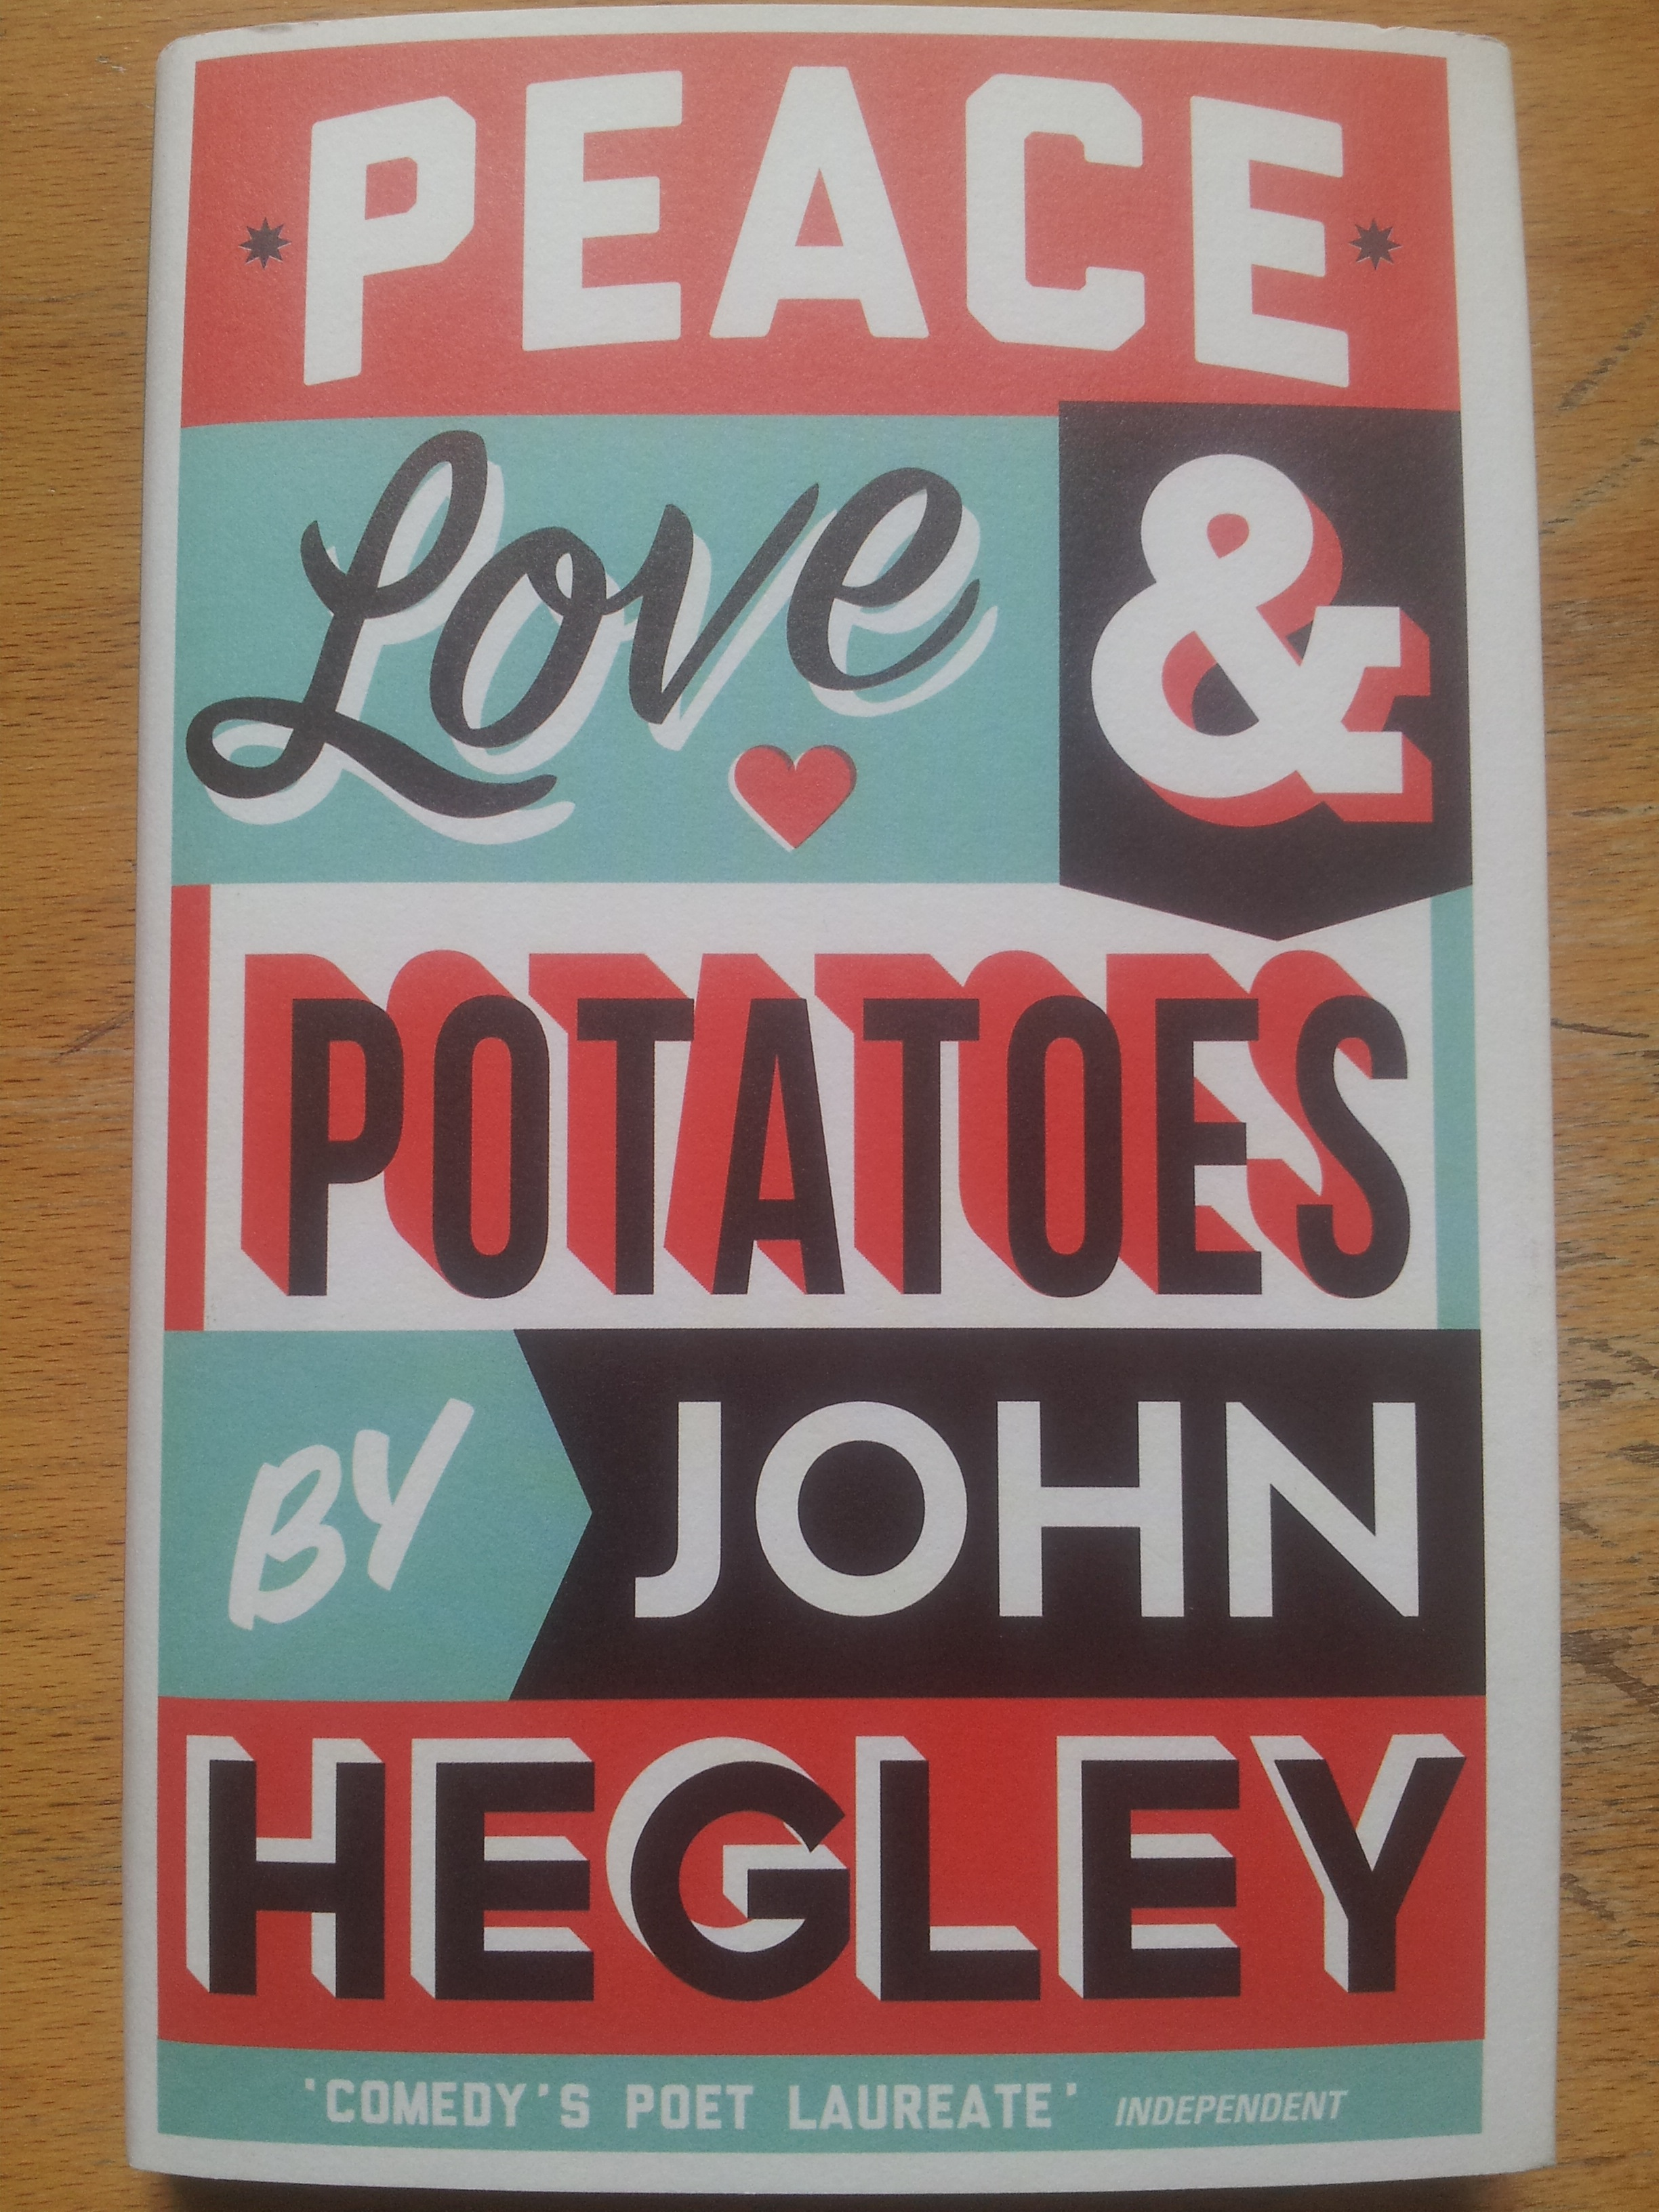 Gig to go to on 5 June: Peace Love & Potatoes by John Hegley will feature, along with folk music and Northern soul at Stoke Newington Town Hall during the StokeyLitFest (3-5 June).